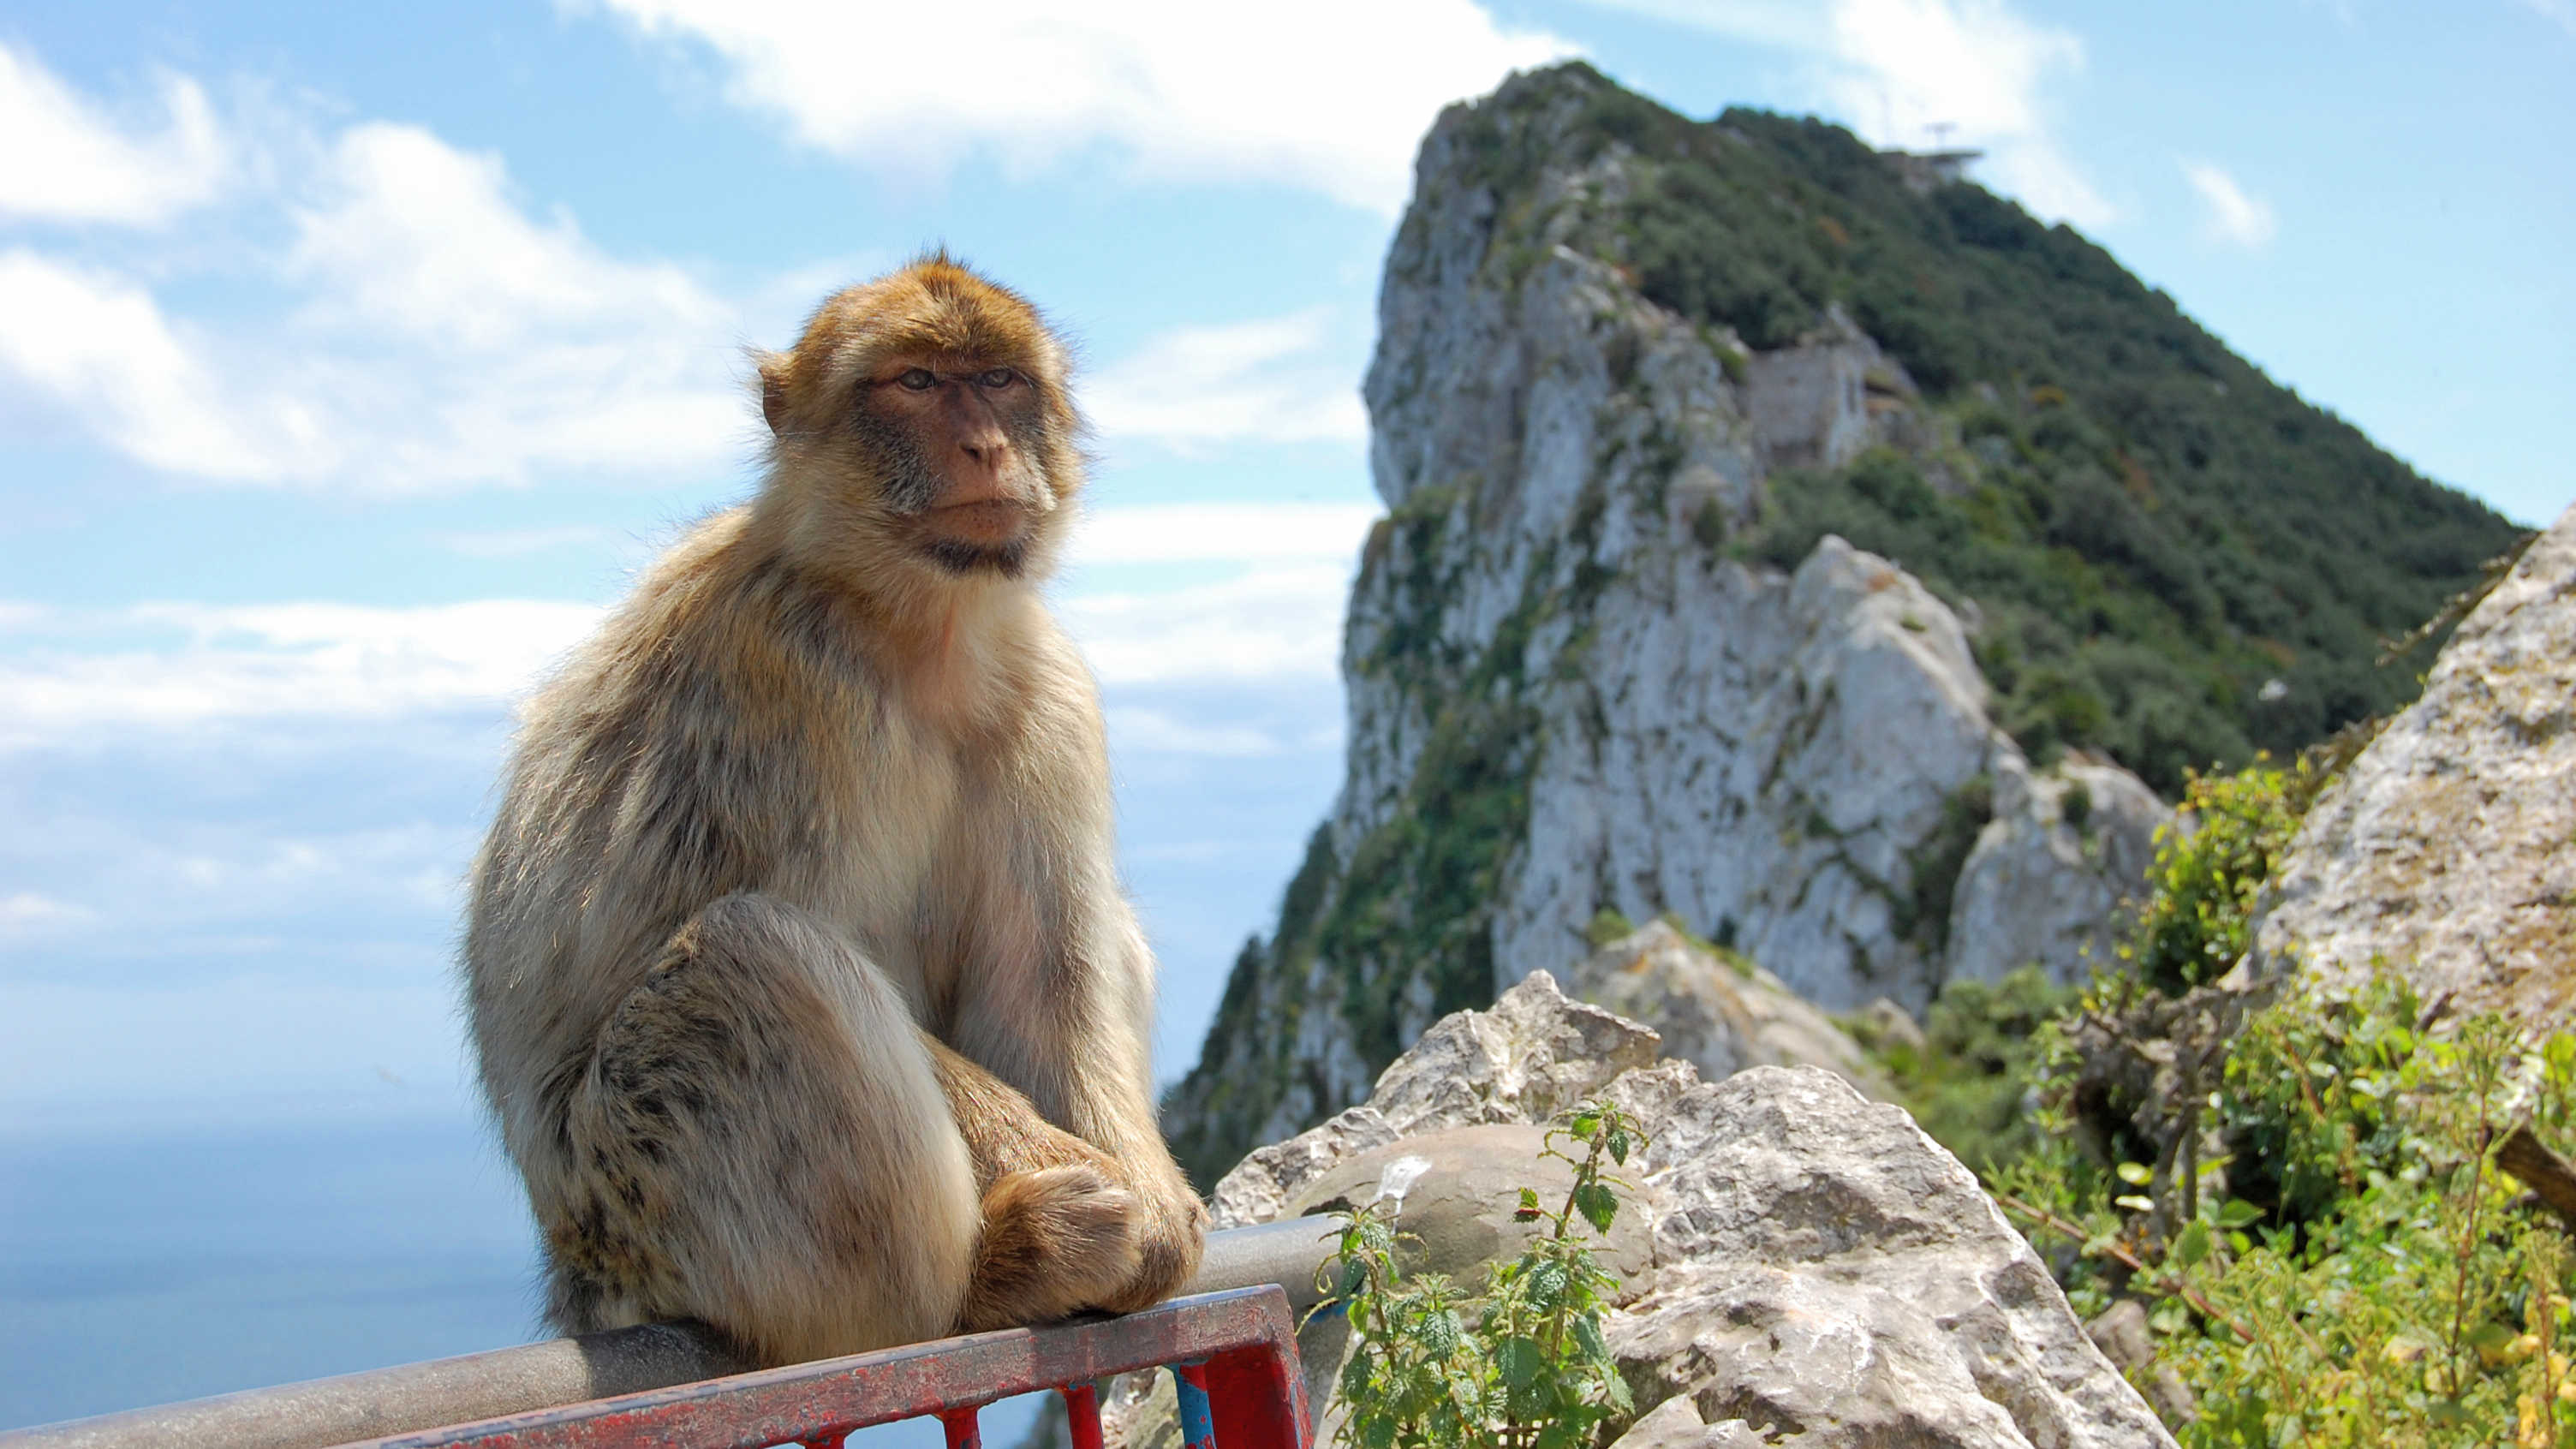 A monkey in Gibraltar